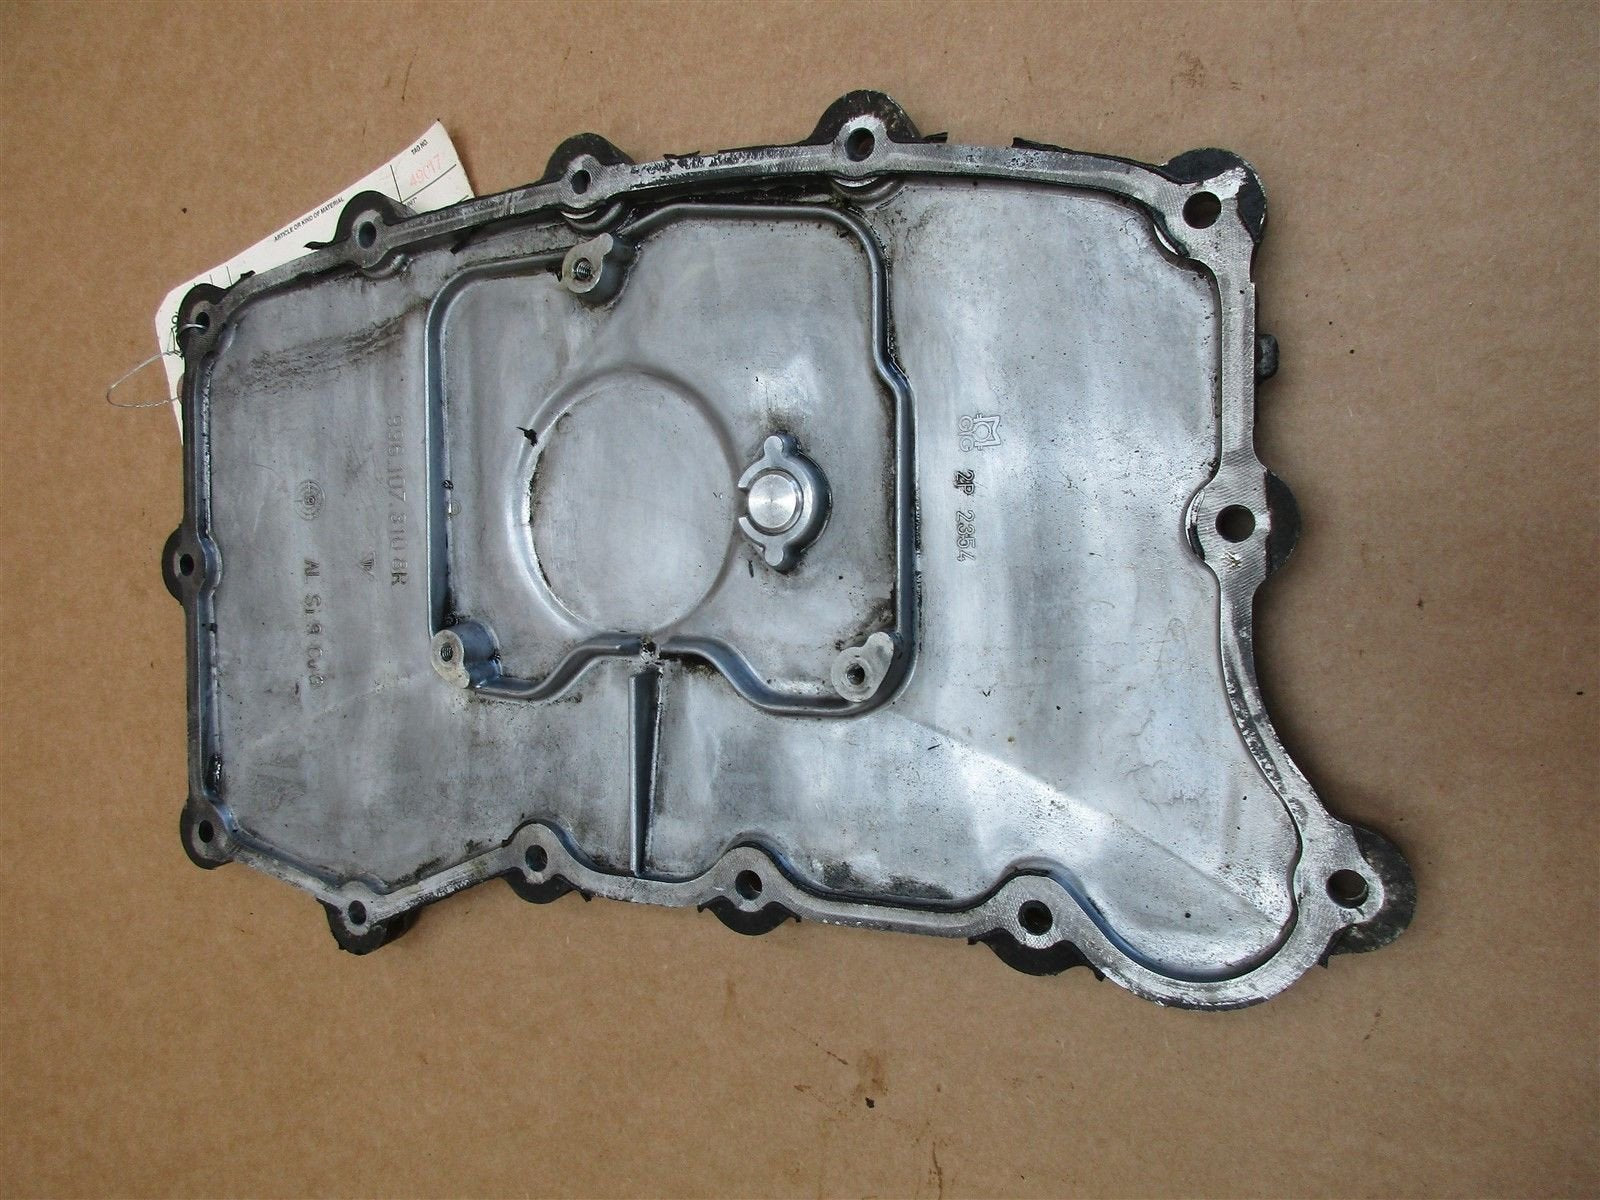 00 Boxster RWD Porsche 986 Engine 2.7 OIL PAN 9961073108R 72,249